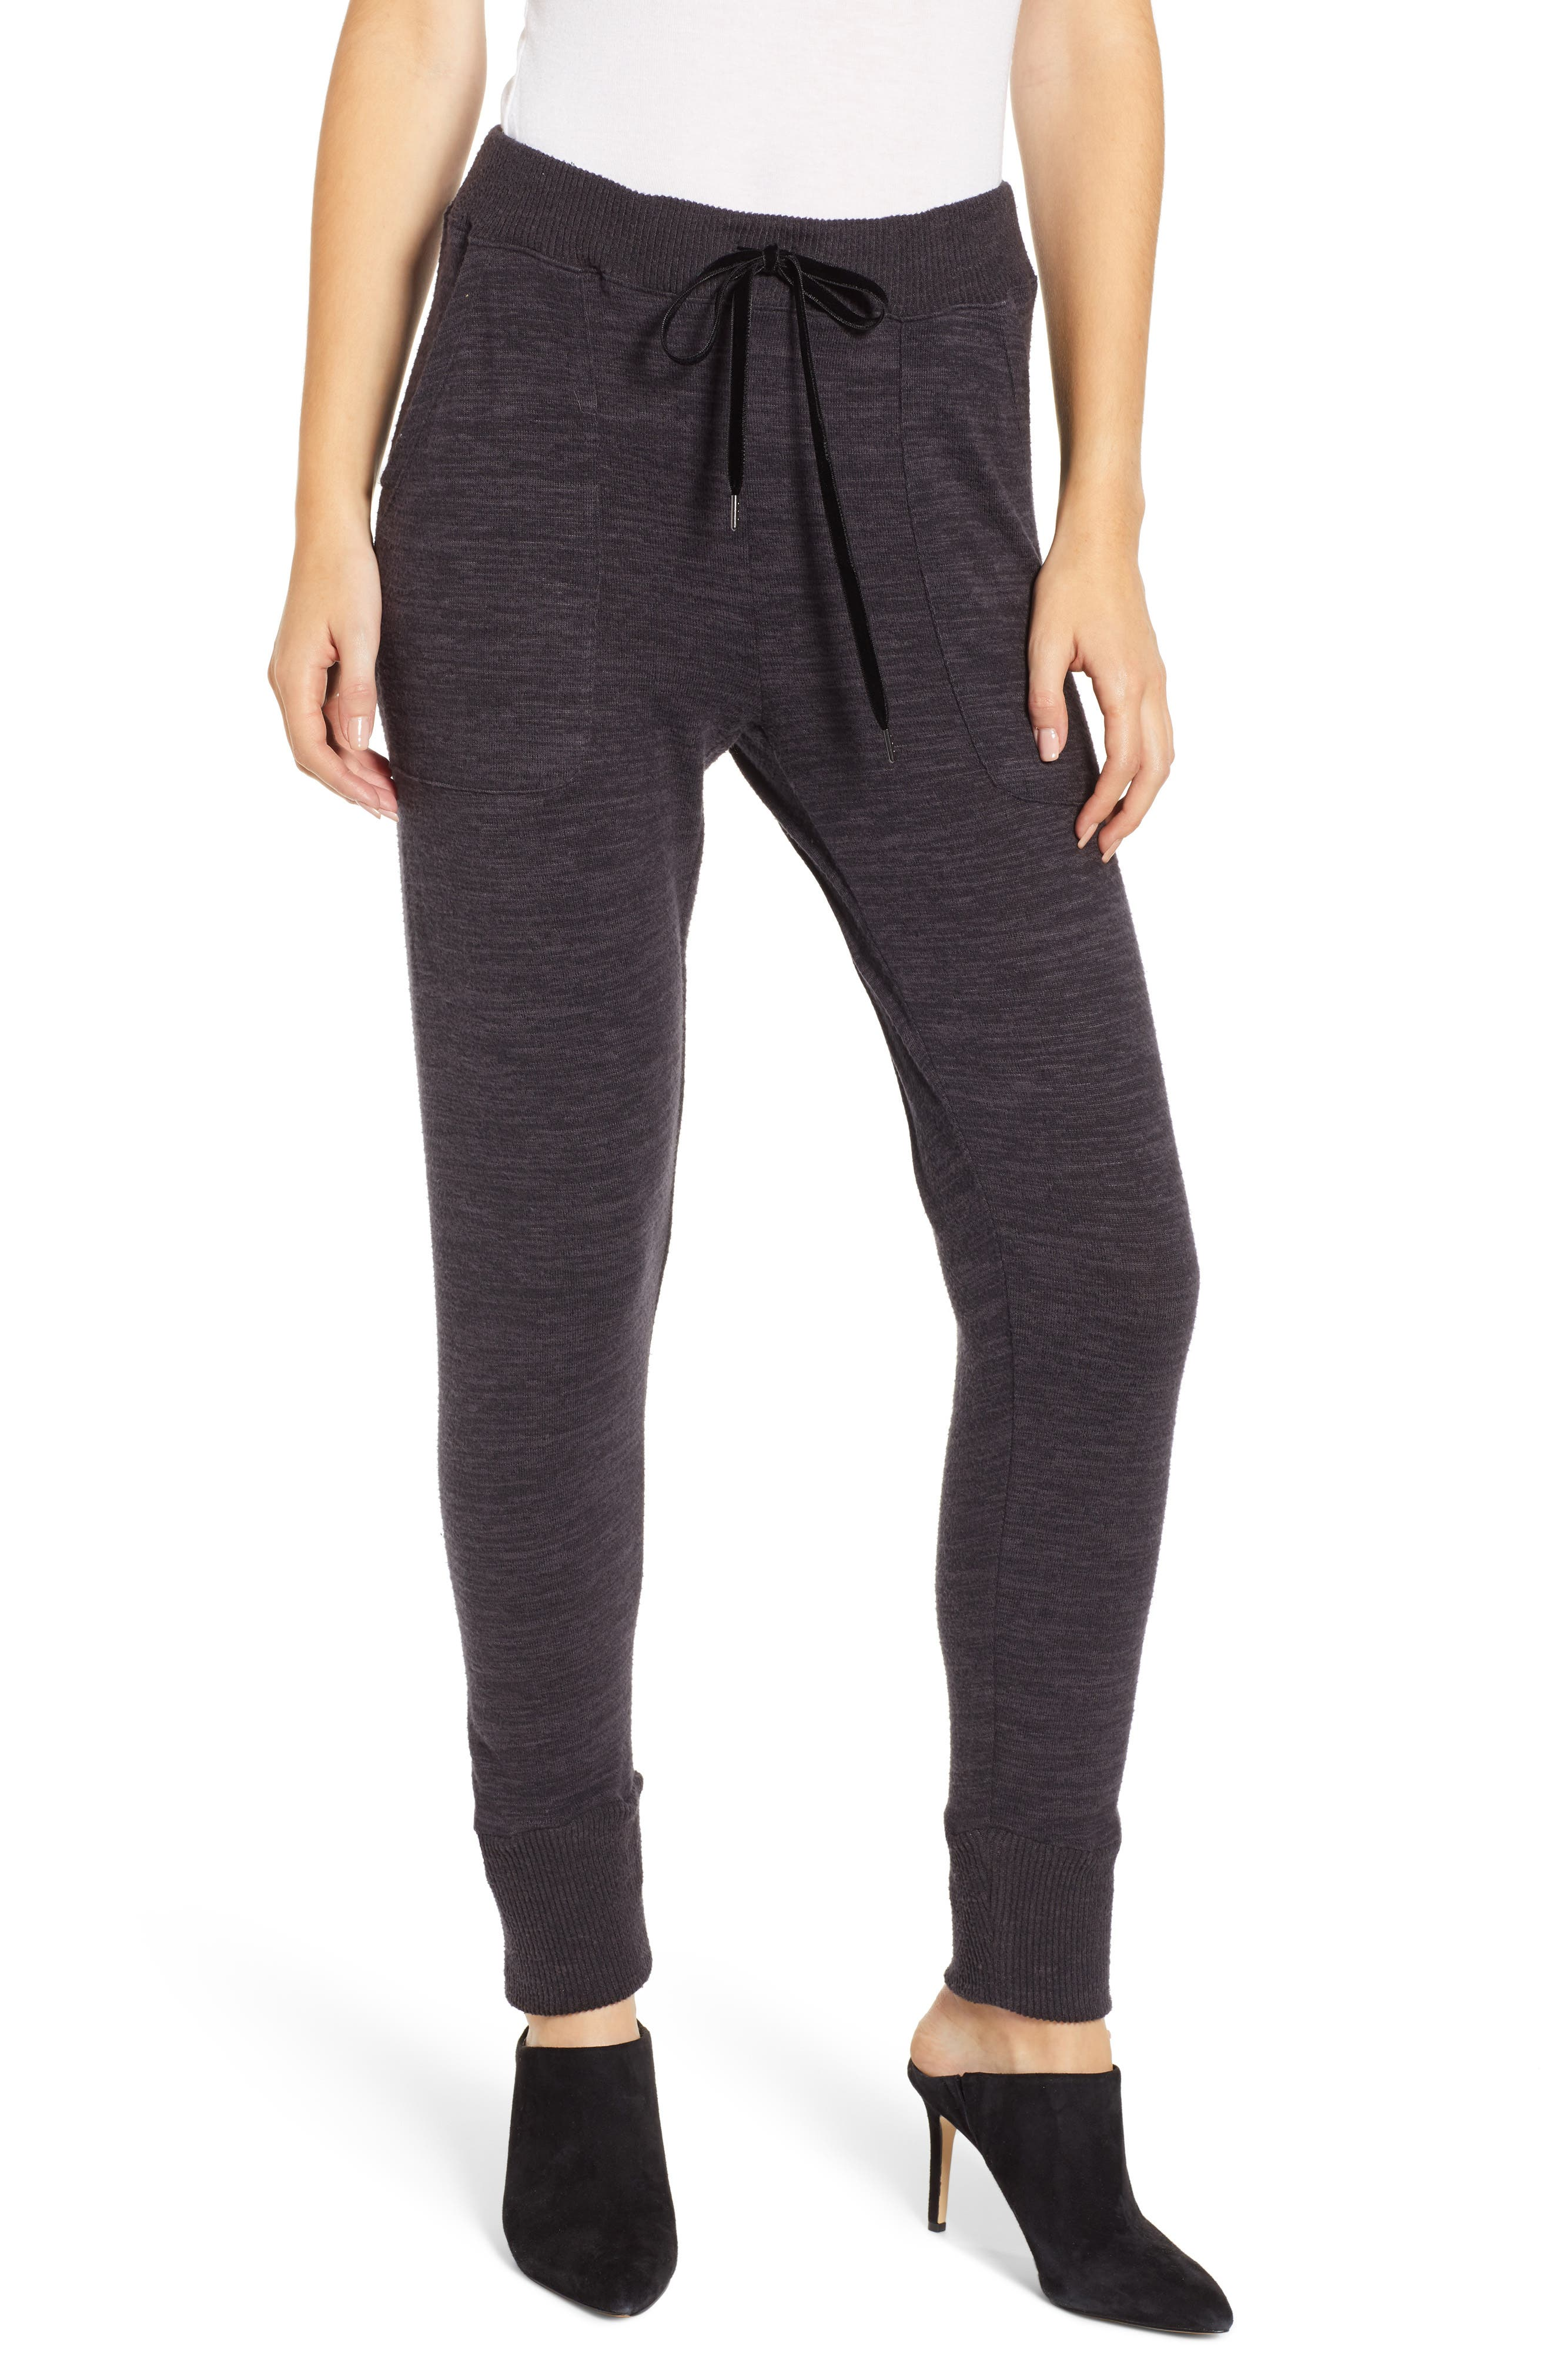 Devon Jogger Pants,                             Main thumbnail 1, color,                             MELANGE BLACK